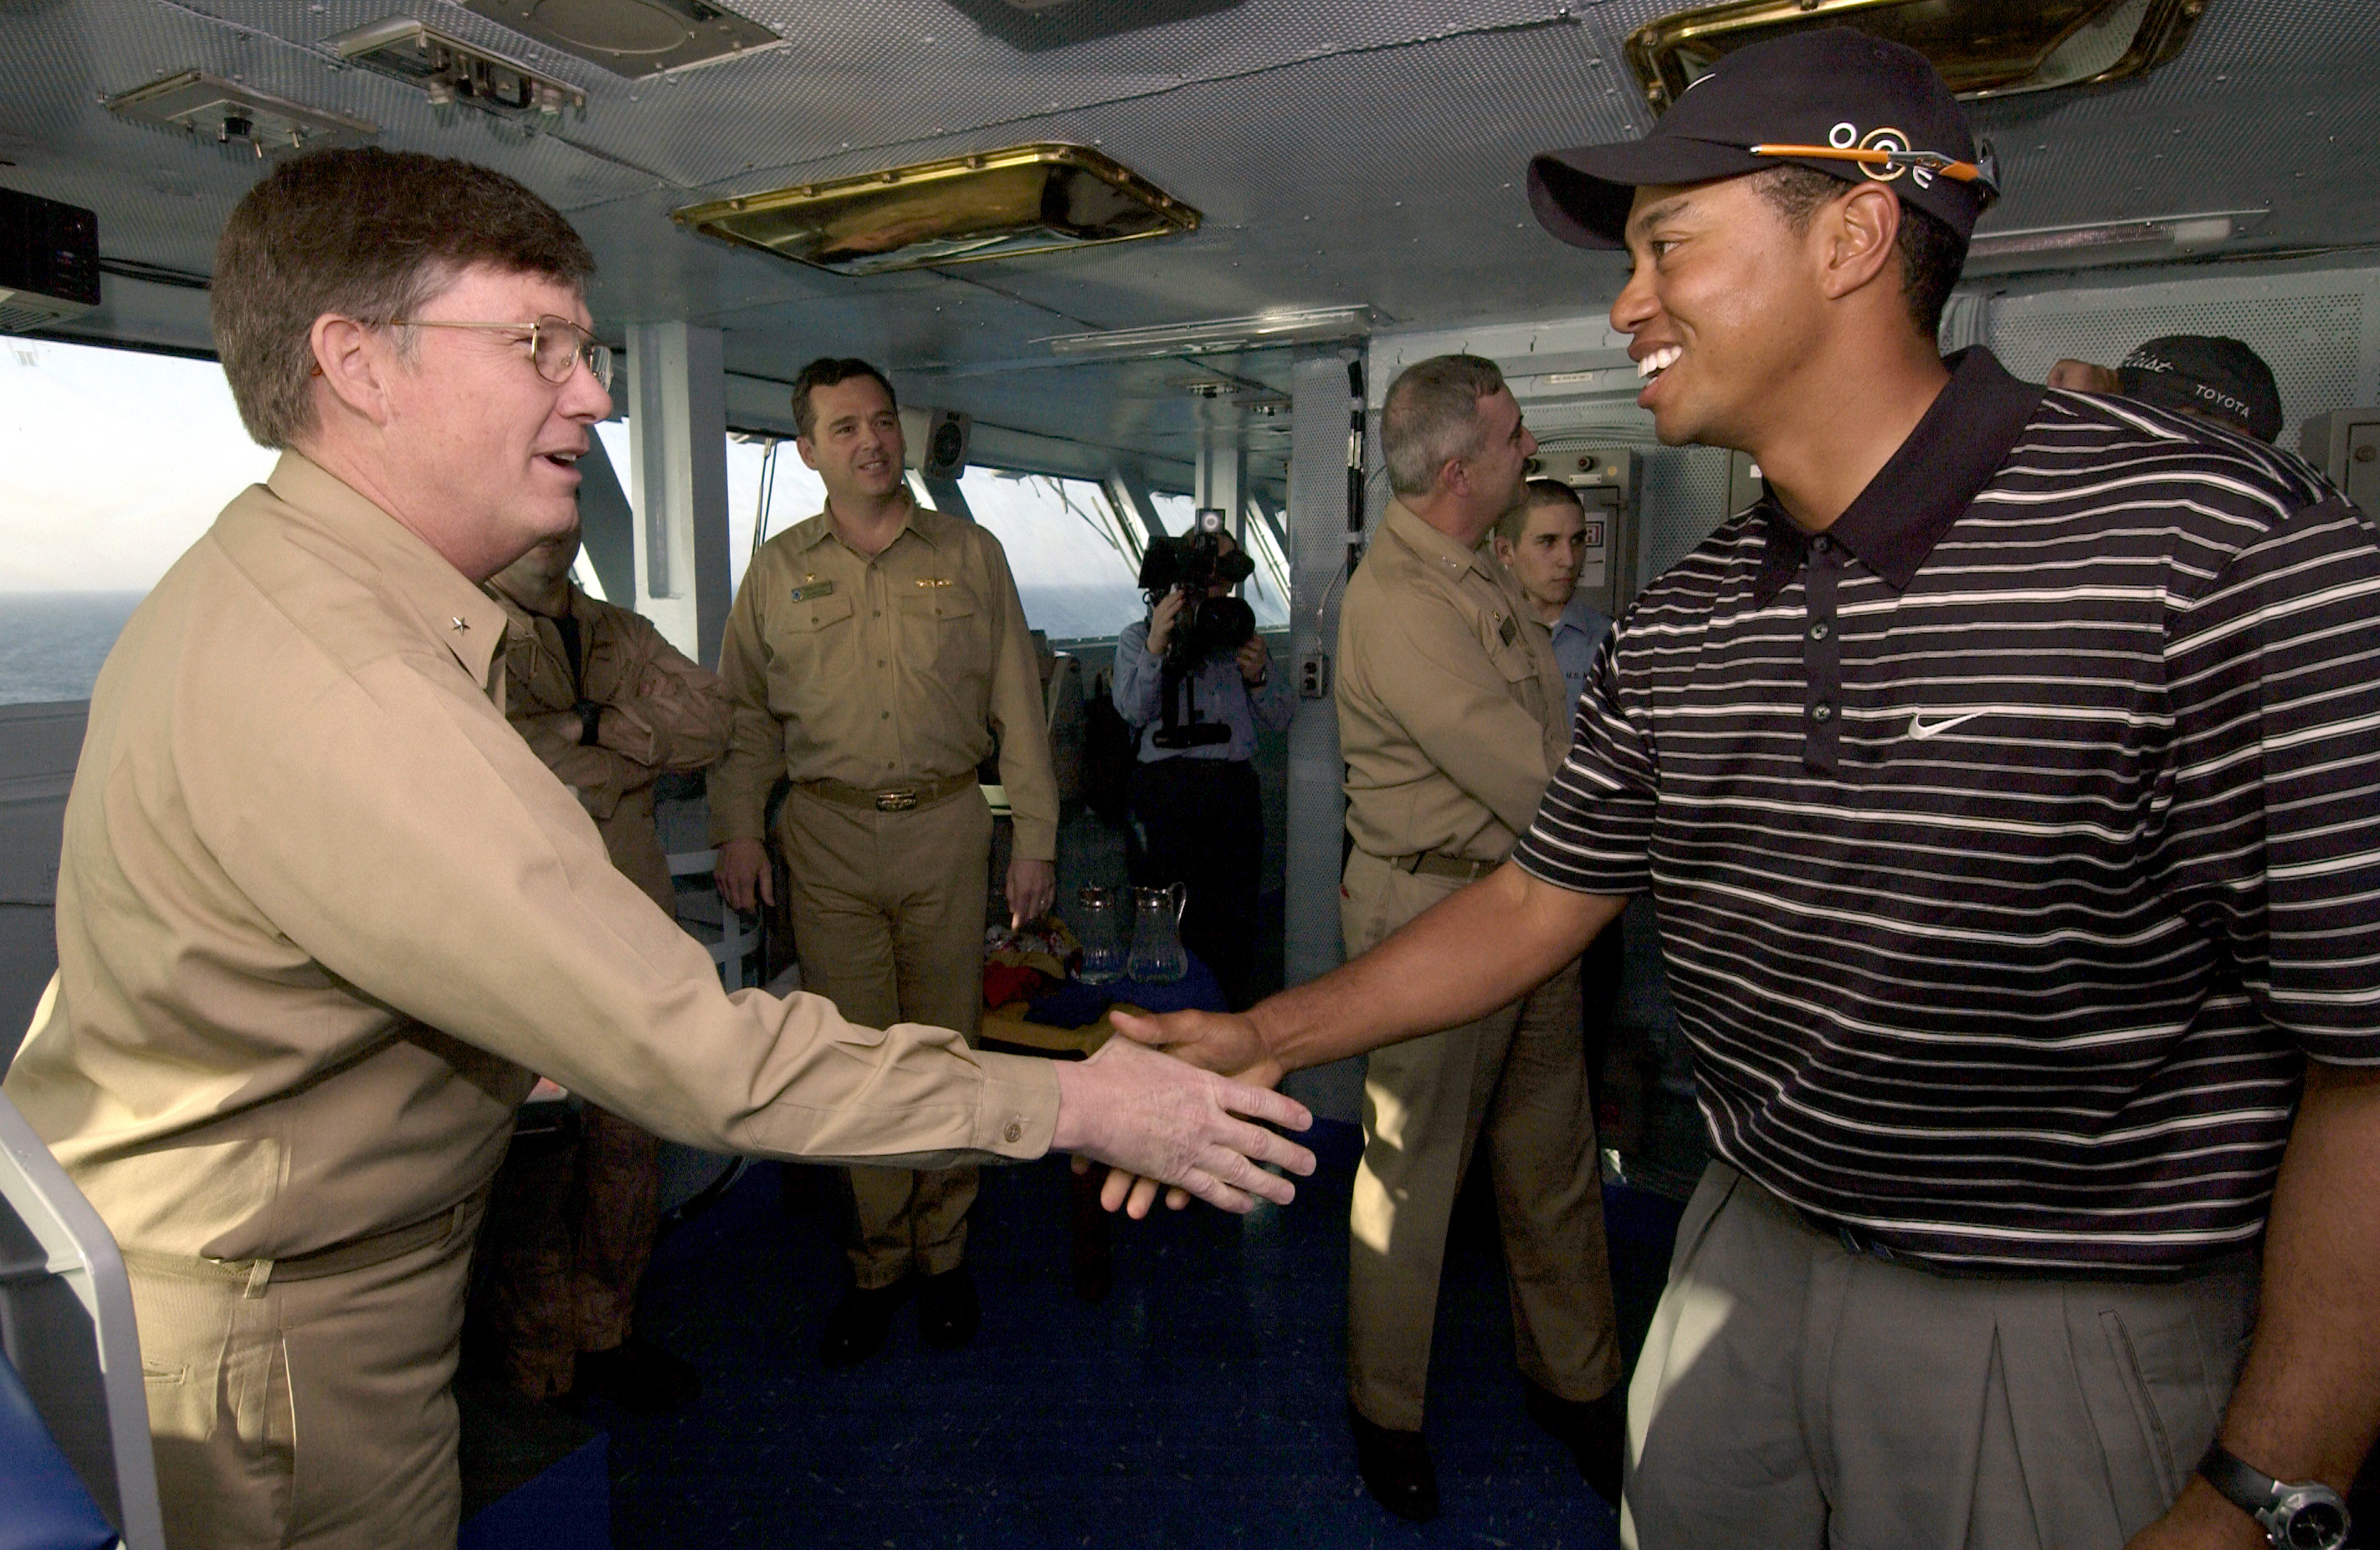 Woods visiting aircraft carrier USSGeorge Washington(CVN-73) in the Persian Gulf before participating in the 2004 Dubai Desert Classic